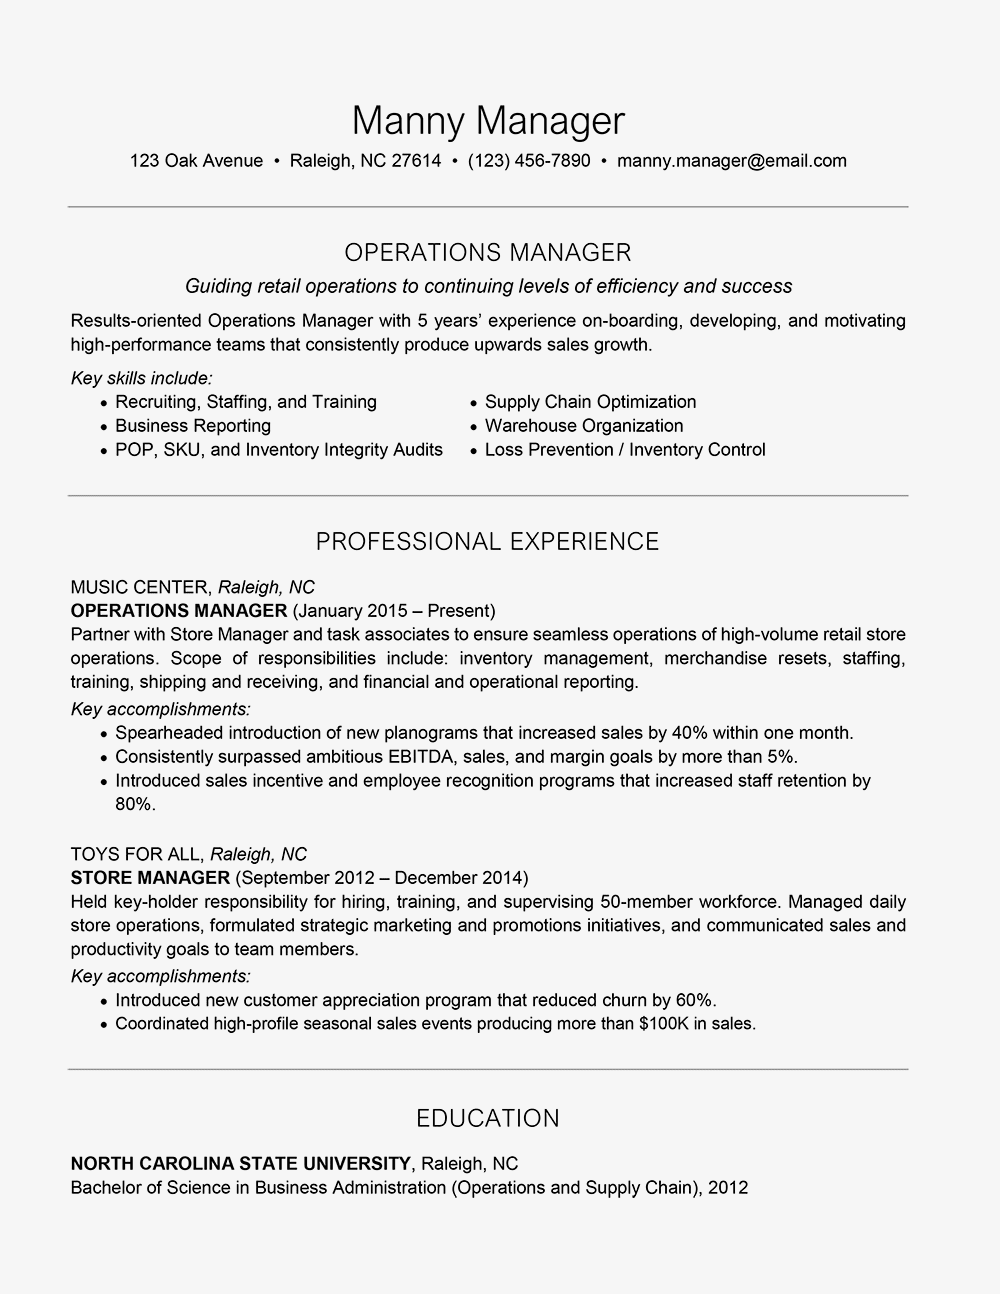 Resume Examples For Managers | Management Resume Examples And Writing Tips